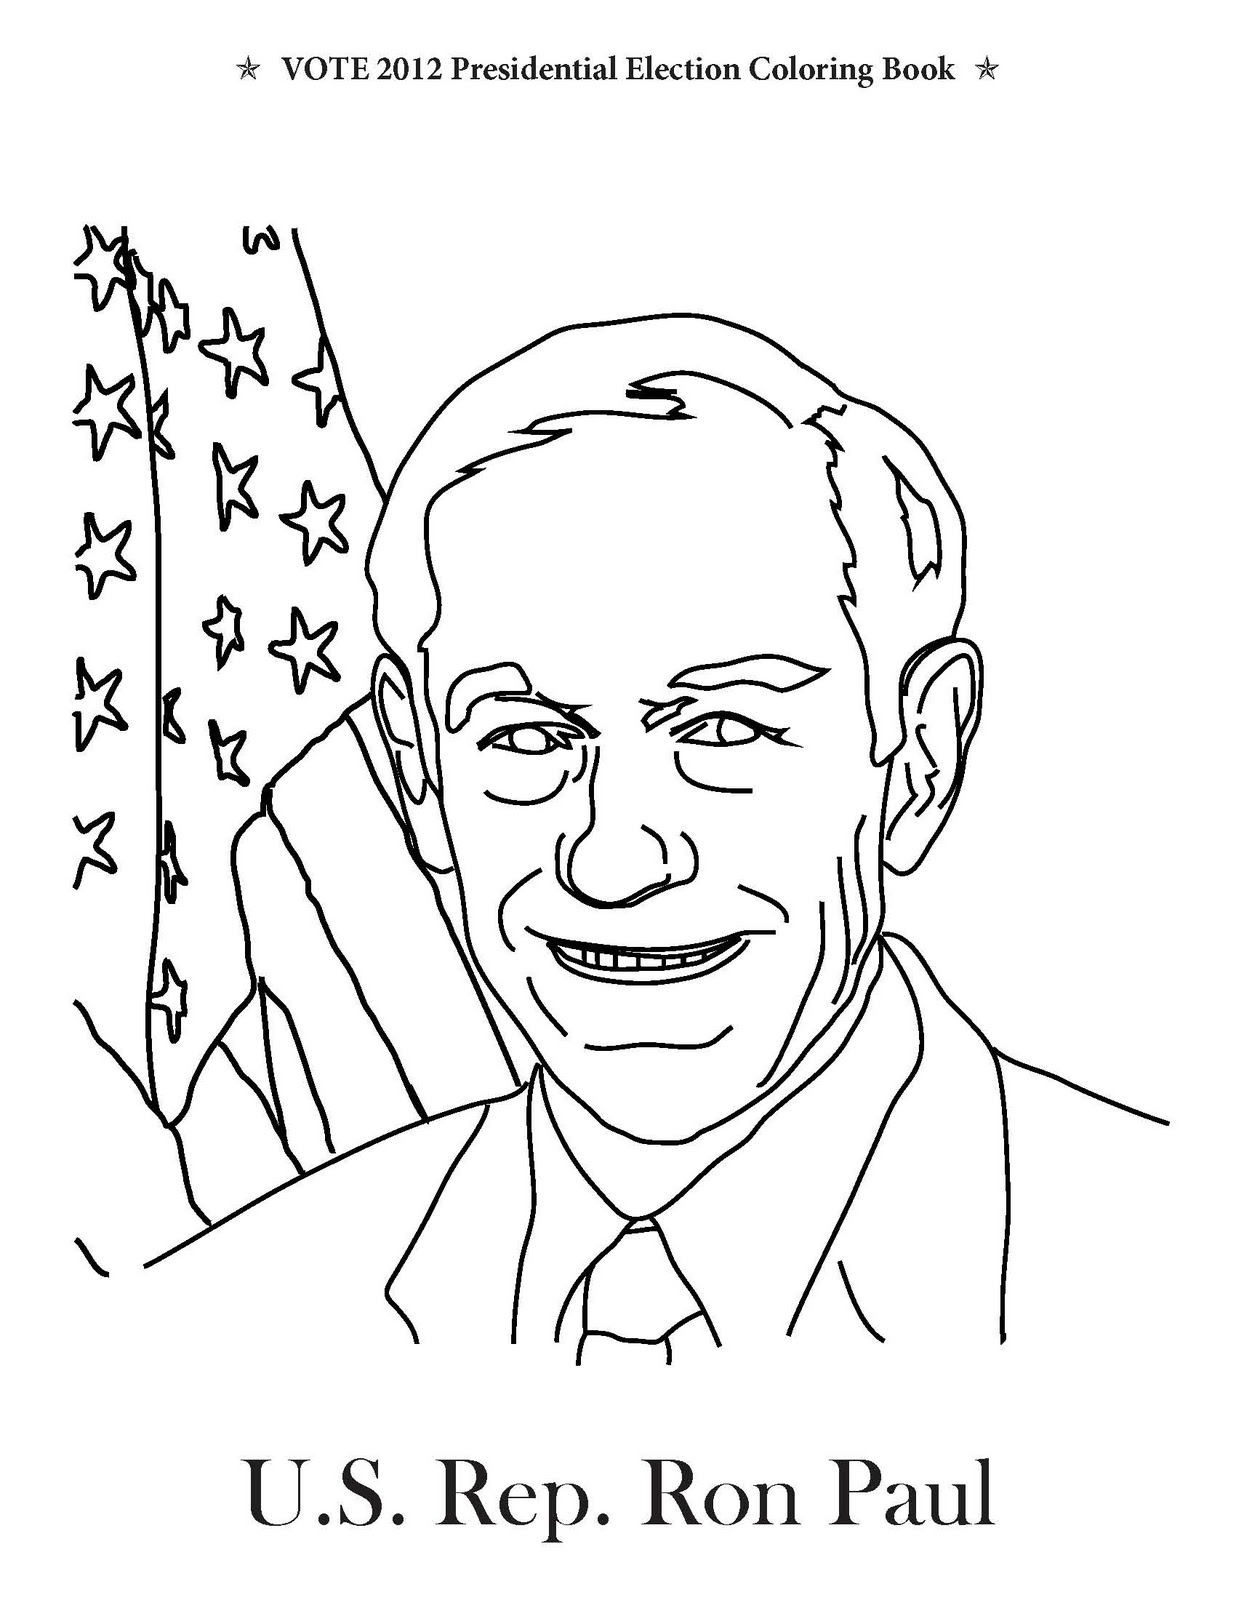 u s rep ron paul of texas from vote 2012 presidential election coloring book